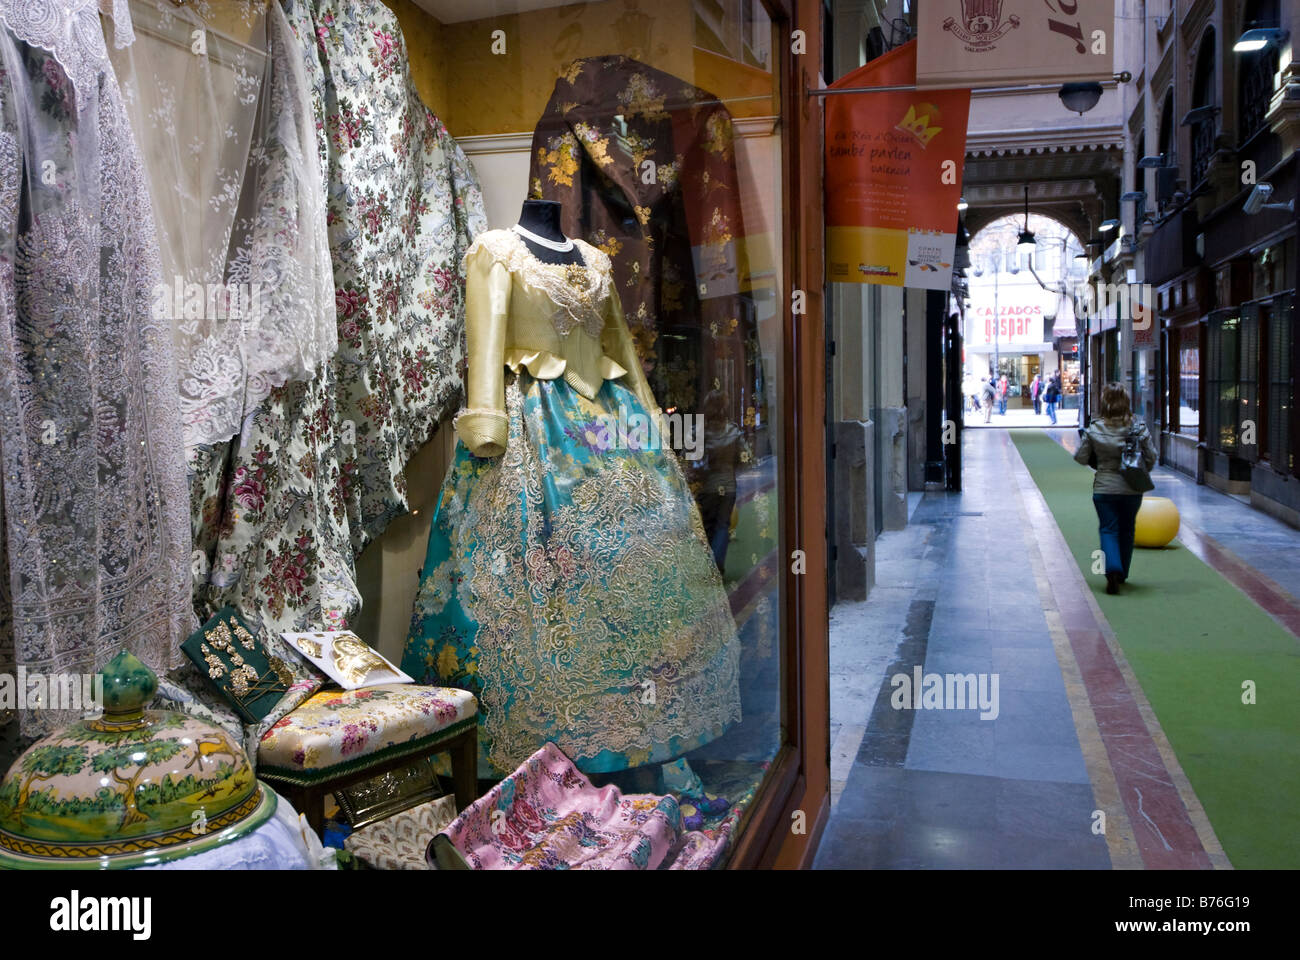 Traditional spanish costume photos traditional spanish costume images alamy for Fenetre en espagnol